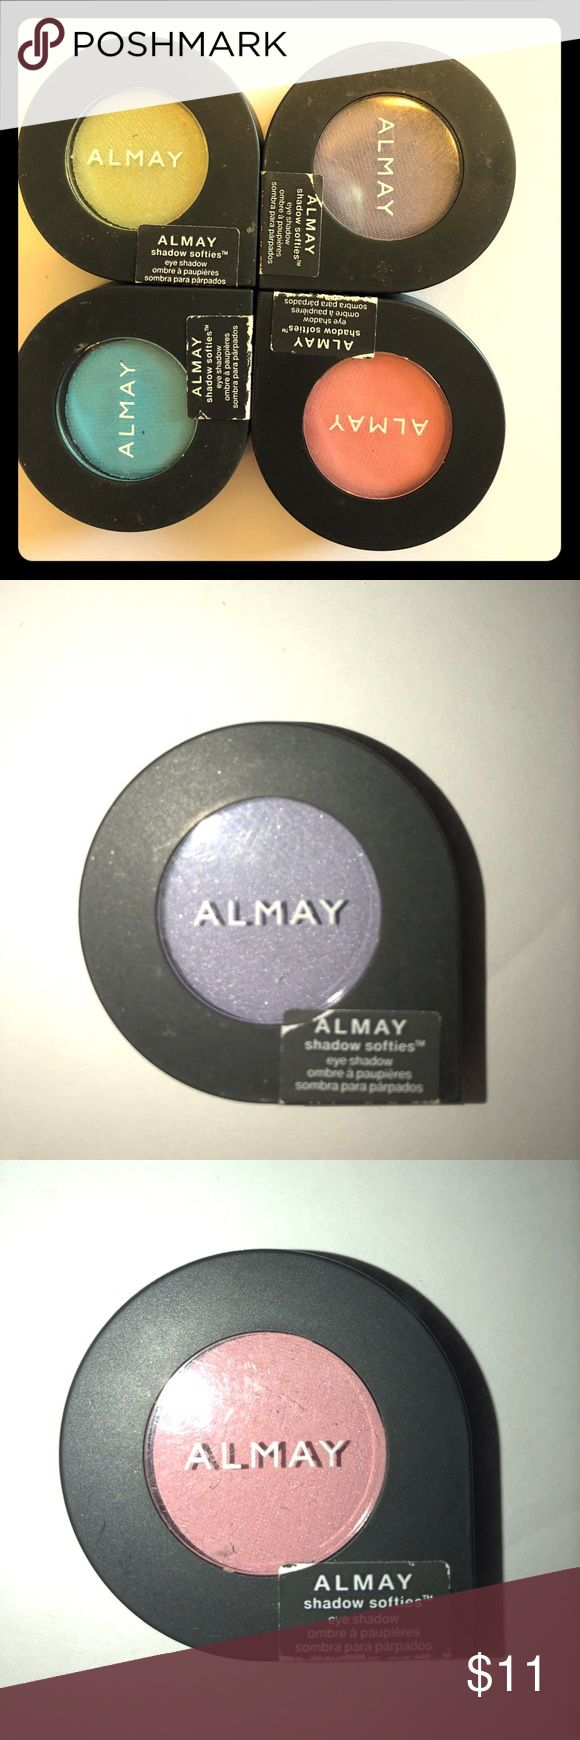 Almay eyeshadow bundle Brand new 115 sea foam 105 honeydew 145 petal 110 lilac  Original price 4.97 each Almay Makeup Eyeshadow